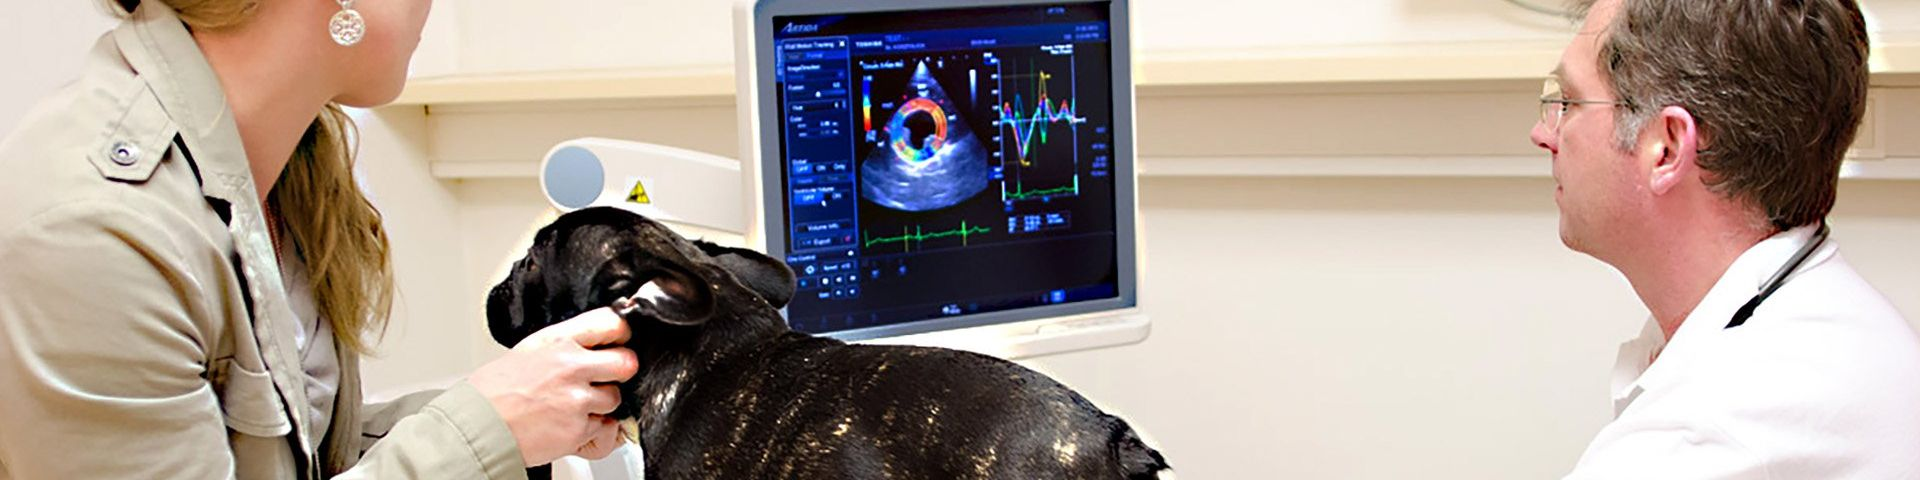 Dr Andreas Kosztolich diagnoses a dog using an Artida high-end Ultrasound system from Canon Medical (Image courtesy of Canon Medical Systems Europe VISIONS Magazine)